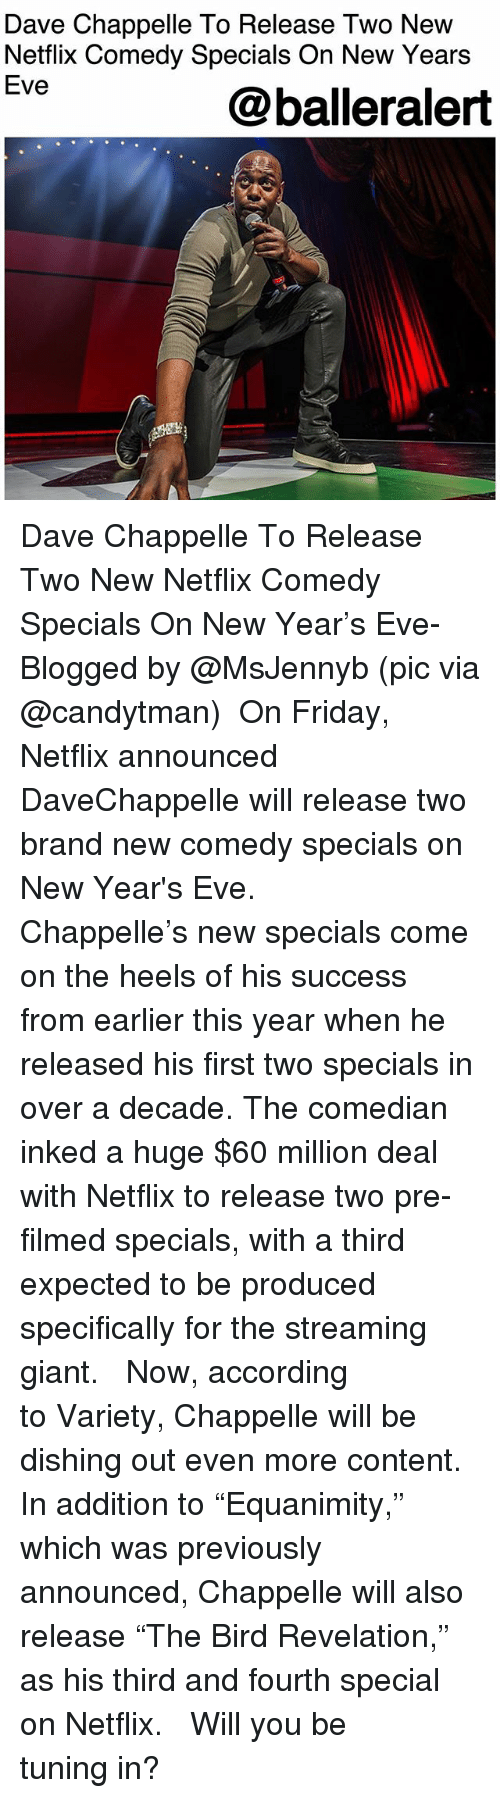 "Friday, Memes, and Netflix: Dave Chappelle To Release Two New  Netflix Comedy Specials On New Years  Eve  @balleralert Dave Chappelle To Release Two New Netflix Comedy Specials On New Year's Eve- Blogged by @MsJennyb (pic via @candytman) ⠀⠀⠀⠀⠀⠀⠀ On Friday, Netflix announced DaveChappelle will release two brand new comedy specials on New Year's Eve. ⠀⠀⠀⠀⠀⠀⠀ ⠀⠀⠀⠀⠀⠀⠀ Chappelle's new specials come on the heels of his success from earlier this year when he released his first two specials in over a decade. The comedian inked a huge $60 million deal with Netflix to release two pre-filmed specials, with a third expected to be produced specifically for the streaming giant. ⠀⠀⠀⠀⠀⠀⠀ ⠀⠀⠀⠀⠀⠀⠀ Now, according to Variety, Chappelle will be dishing out even more content. In addition to ""Equanimity,"" which was previously announced, Chappelle will also release ""The Bird Revelation,"" as his third and fourth special on Netflix. ⠀⠀⠀⠀⠀⠀⠀ ⠀⠀⠀⠀⠀⠀⠀ Will you be tuning in?"